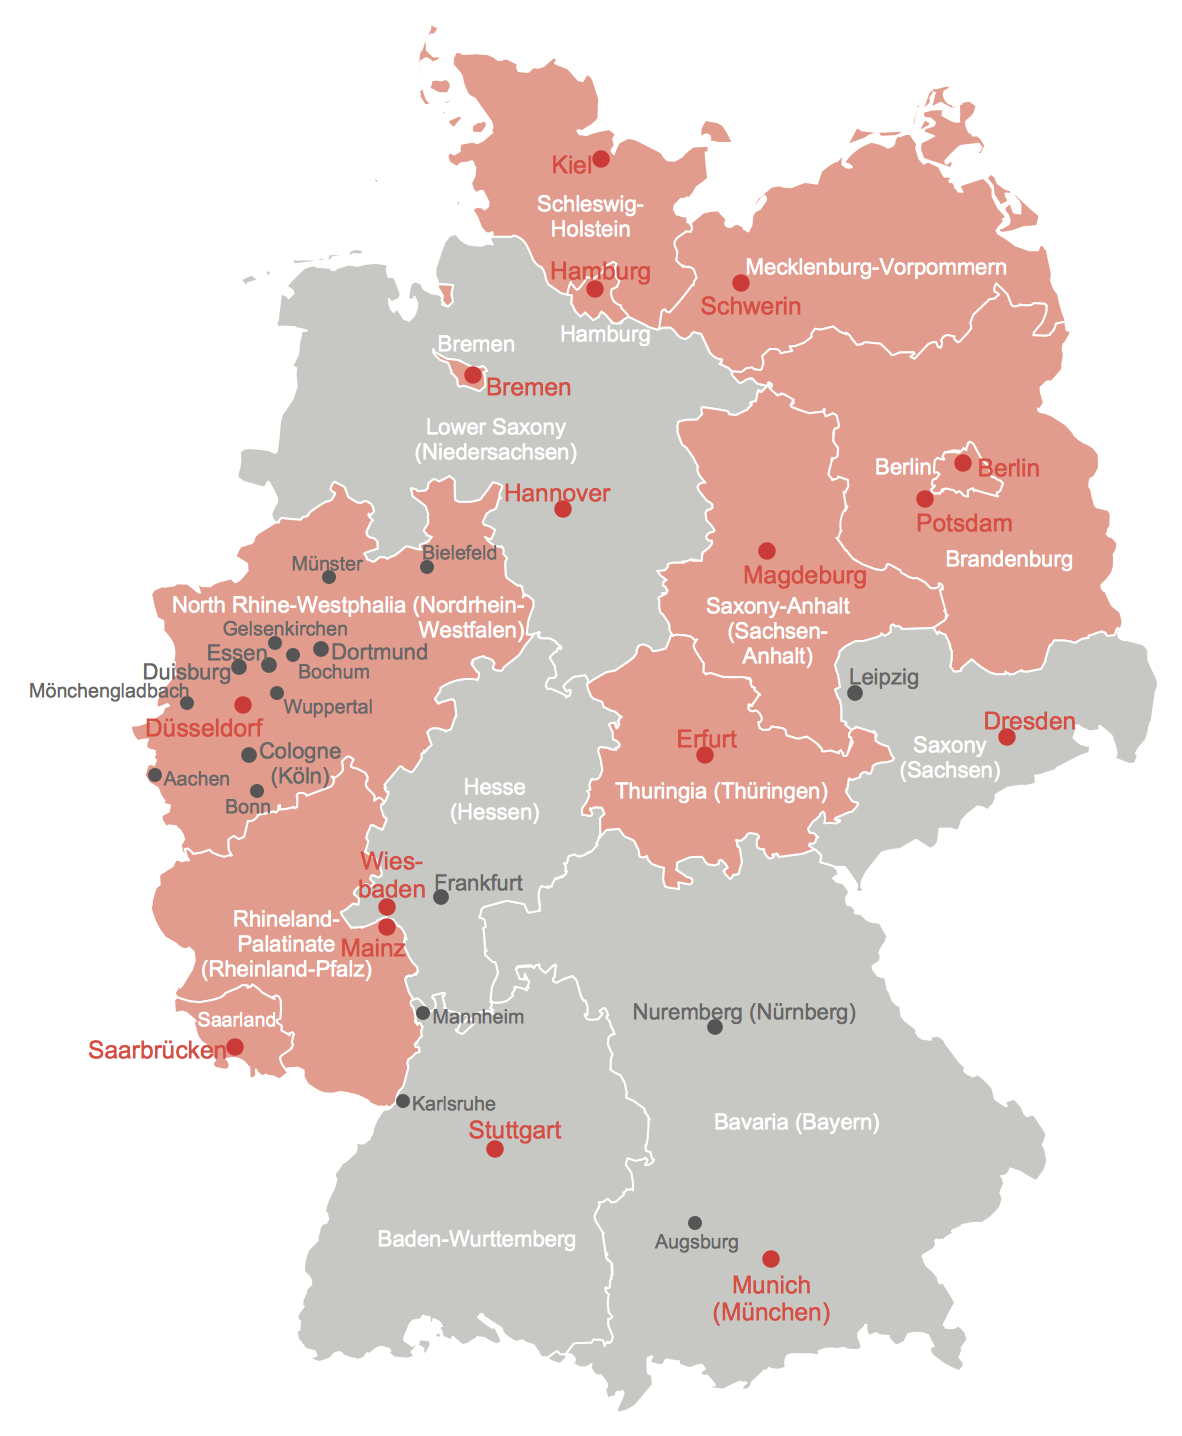 Example 2: States of Germany with Freedom of Information Legislation on map of rastatt, map of münster, map of monchengladbach, map of saarland, map of basel, map of osterholz-scharmbeck, map of nurtingen, map of nordlingen, map of marburg, map of herzogenaurach, map of porto, map of hamm, map of bowbells, map of hindenburg, map of schwaben, map of bruchsal, map of oberpfalz, map of remagen, map of holzkirchen, map of cochem,